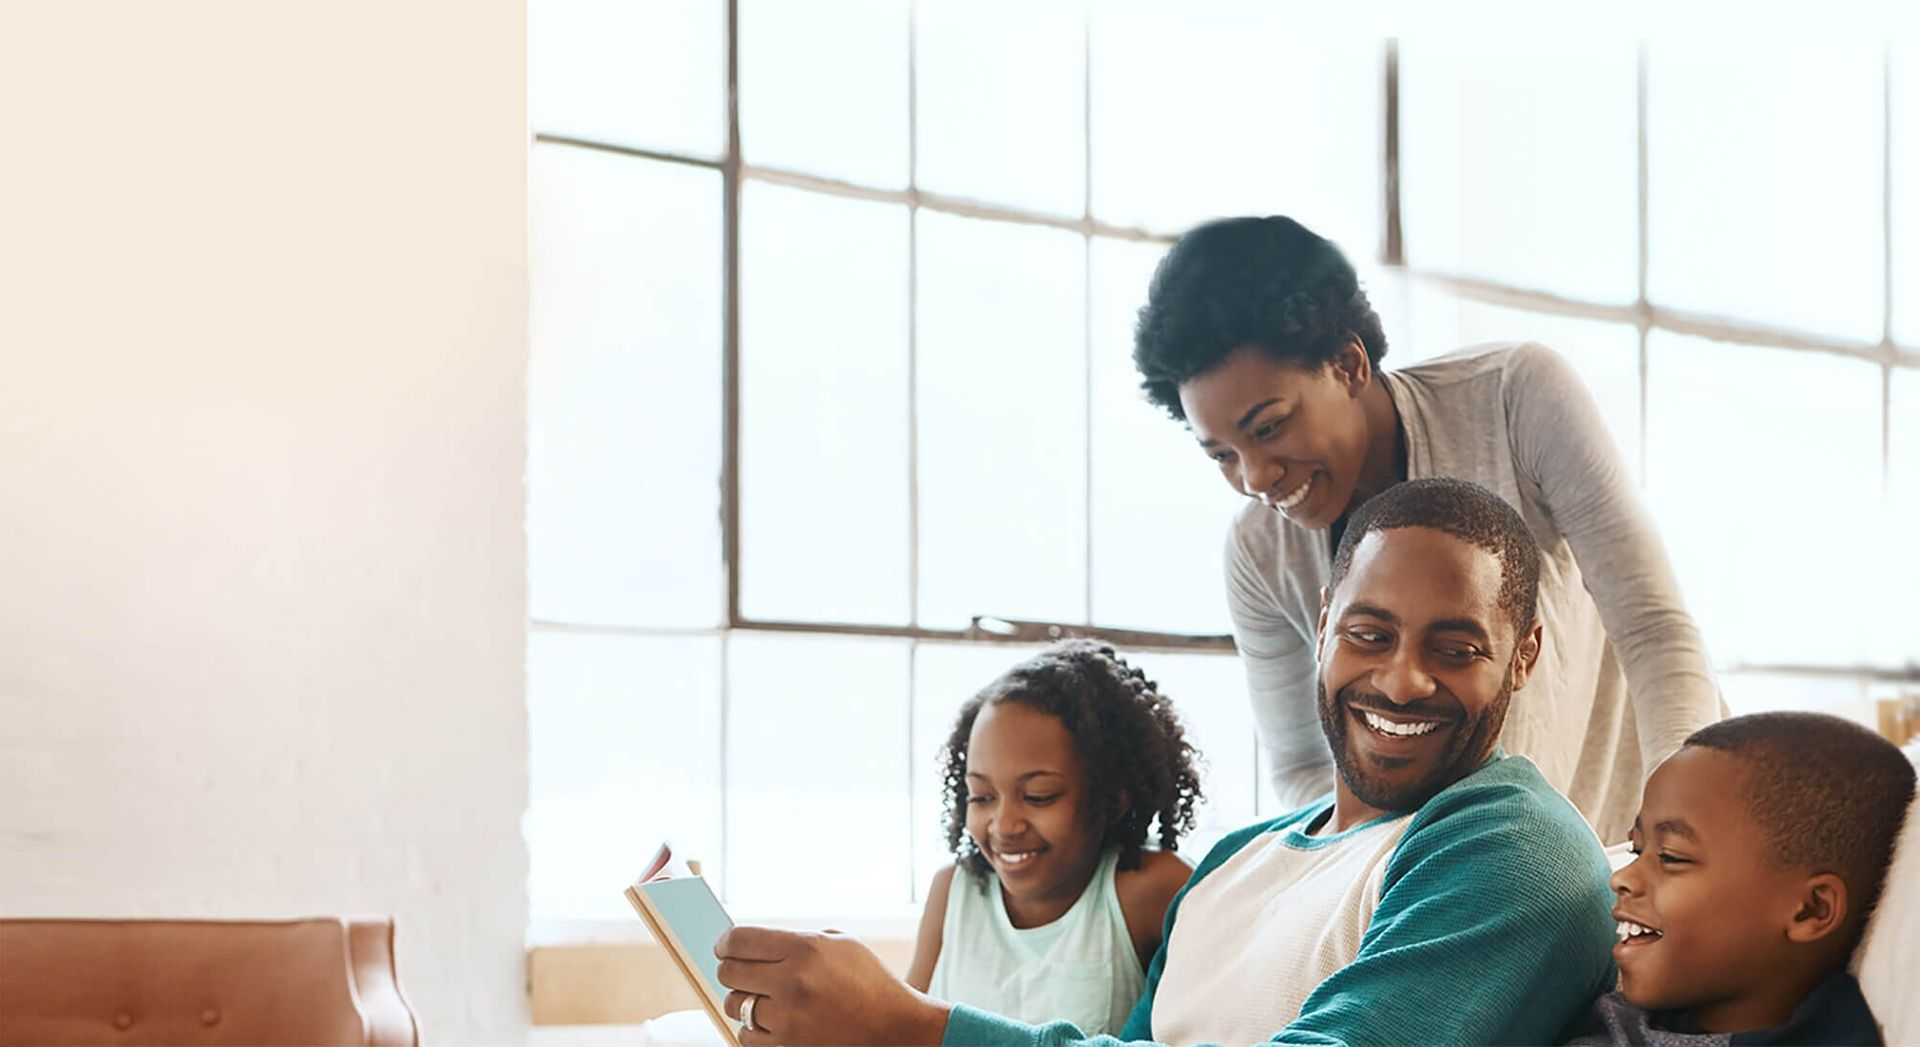 Freedom Mortgage: Family in living room laughing as father reads from a book